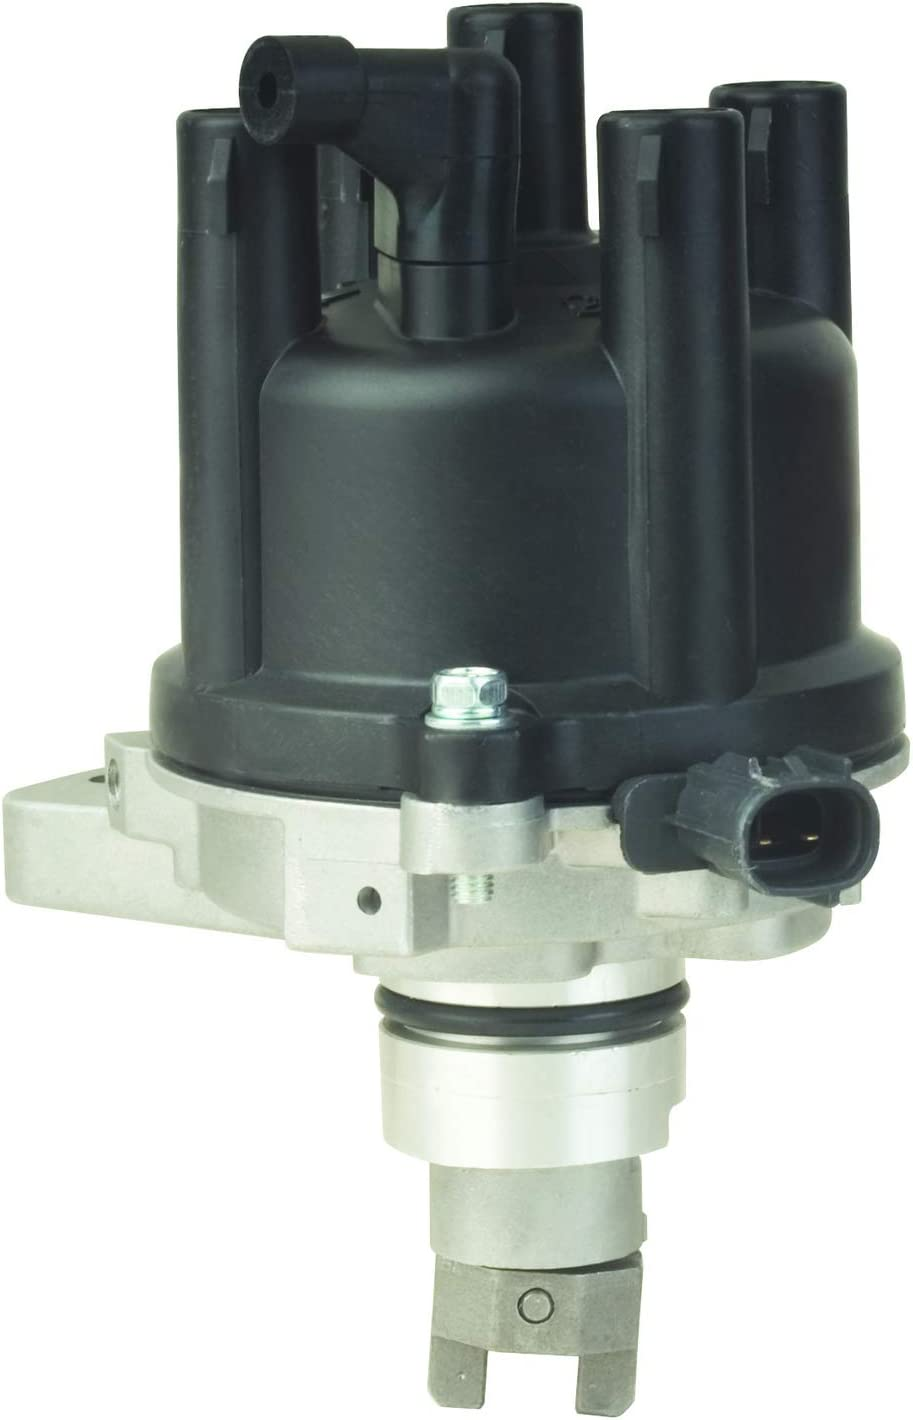 NEW Distributor Fits Toyota Camry 2.2L 1996 19100-74230 1910074230 Dst74427 2-YEAR WARRANTY